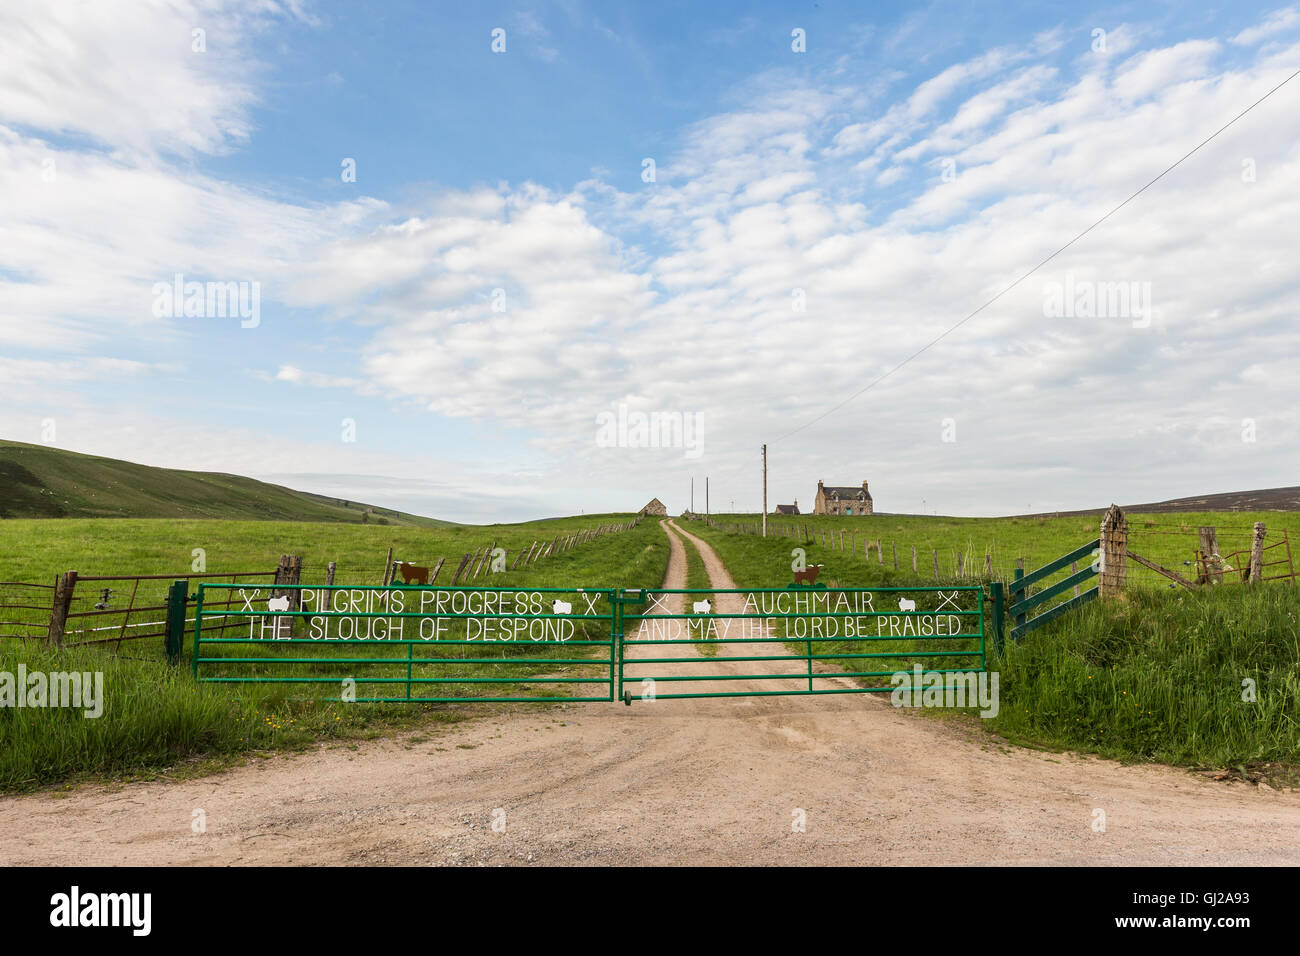 Religious text on farm gates in Scotland. Stock Photo